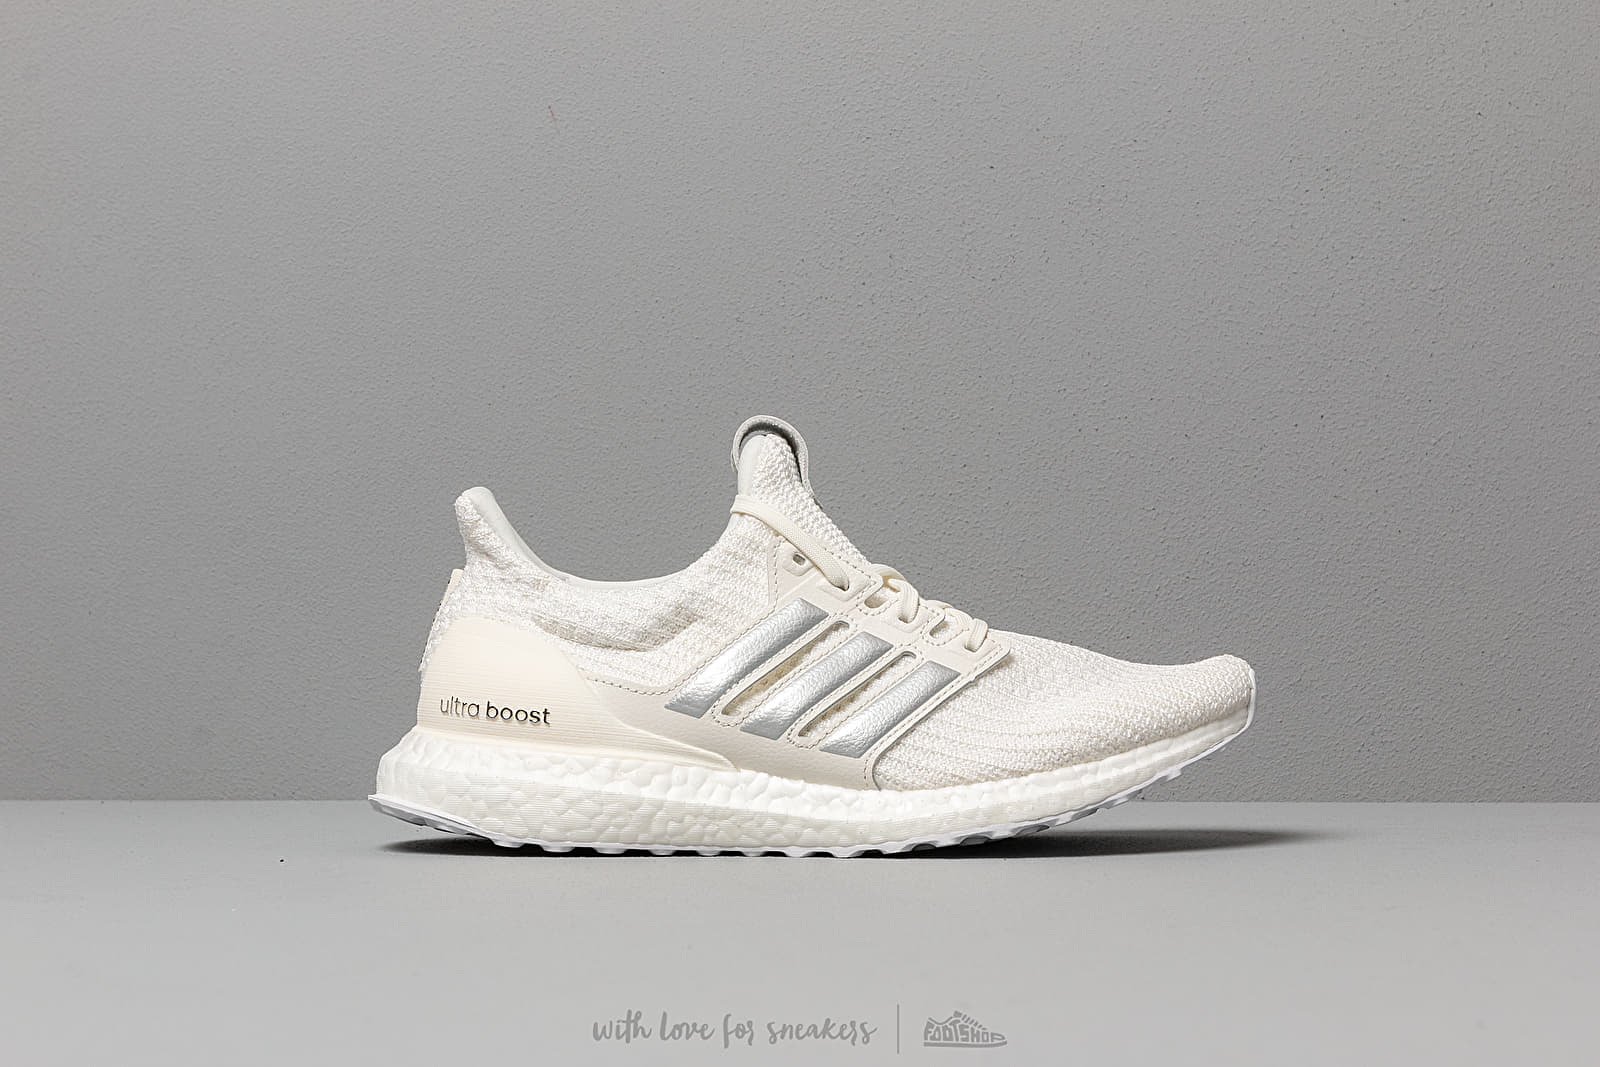 promo code f2800 c4c4d adidas x Game of Thrones UltraBOOST W Off White/ Silver ...